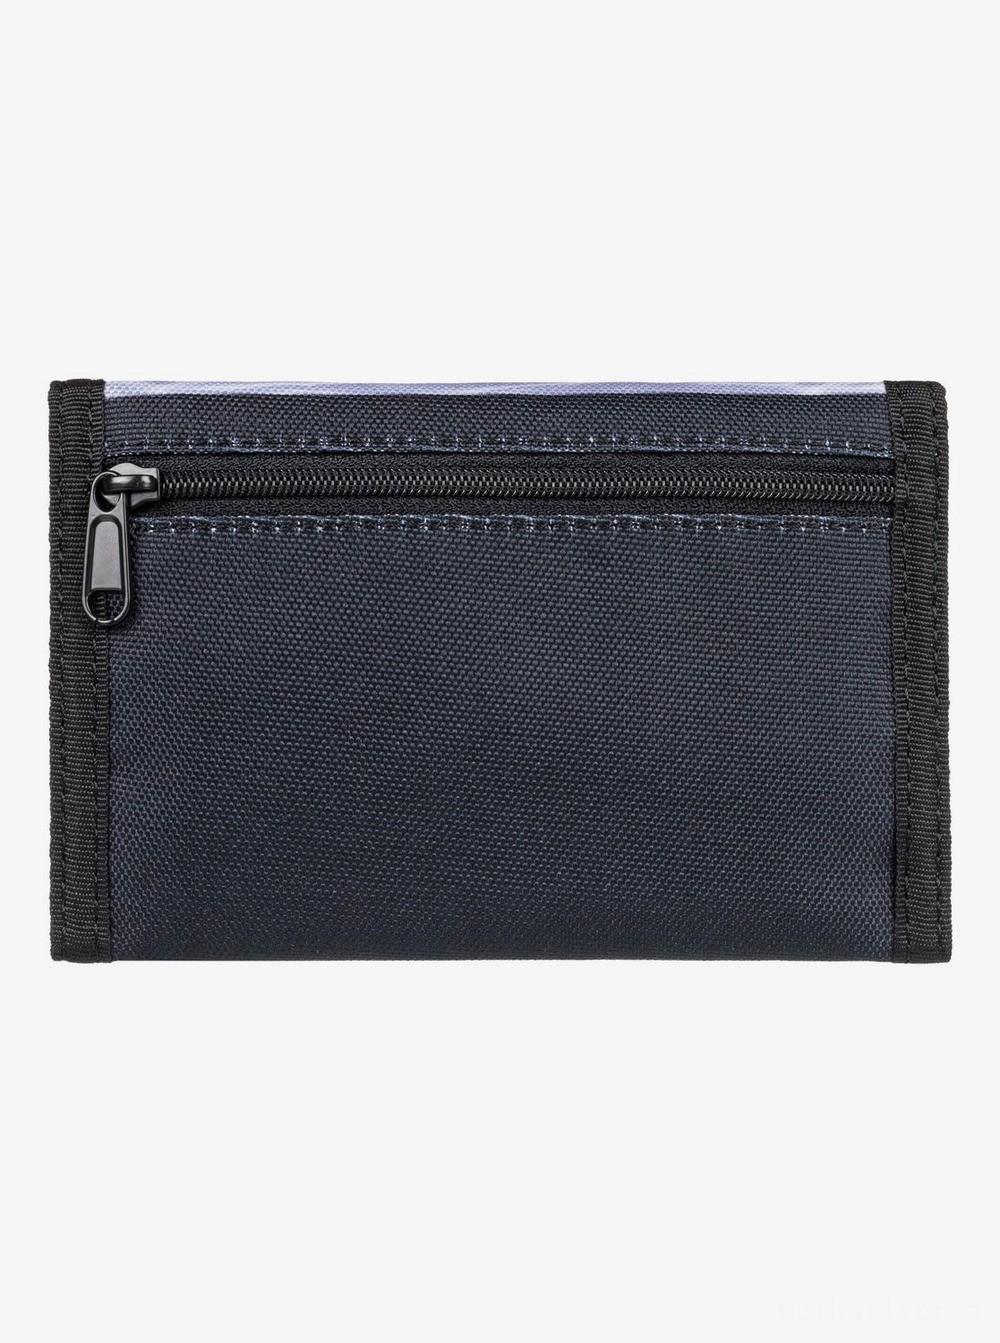 best price the everydaily tri-fold wallet - dazzling blue limited sale last chance